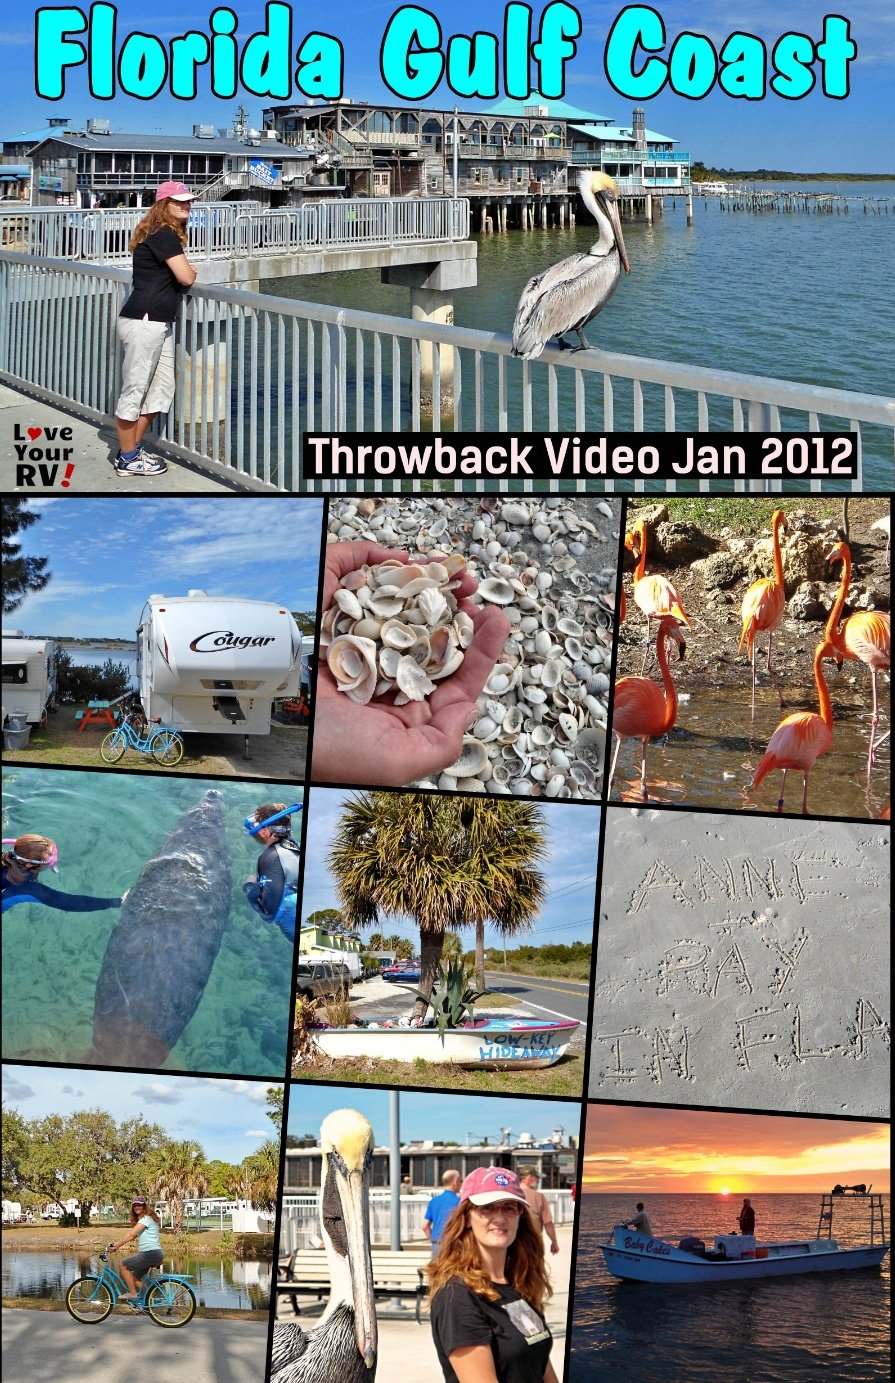 Throwback video from an RV trip up the Florida Gulf Coast in January 2012